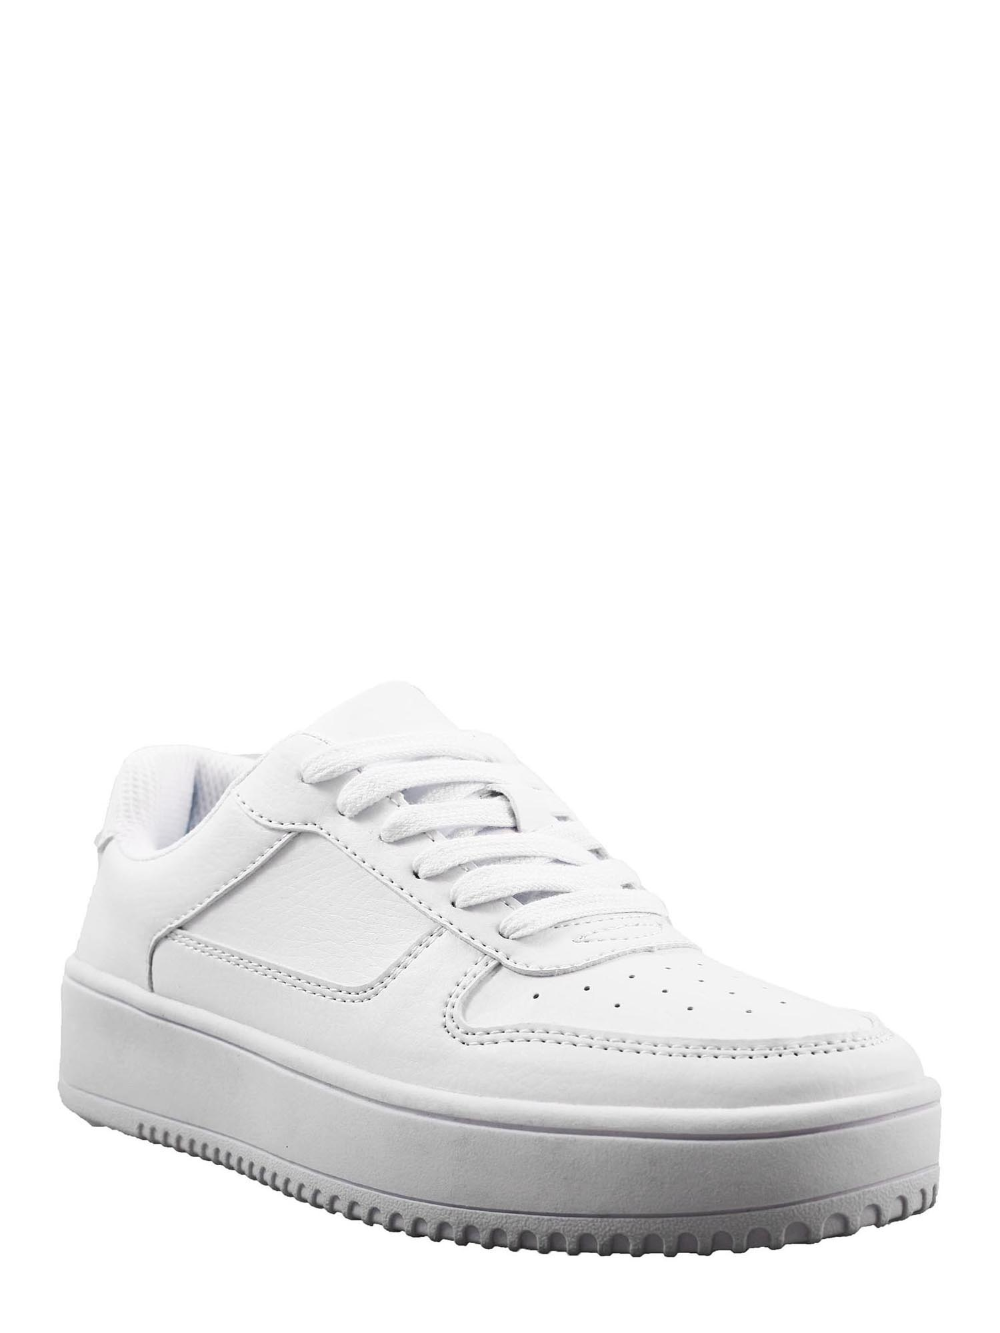 Time And Tru Time And Tru Platform Sneaker Women S Wide Width Available Walmart Com Womens Sneakers Platform Sneaker Sneakers [ 1333 x 1000 Pixel ]